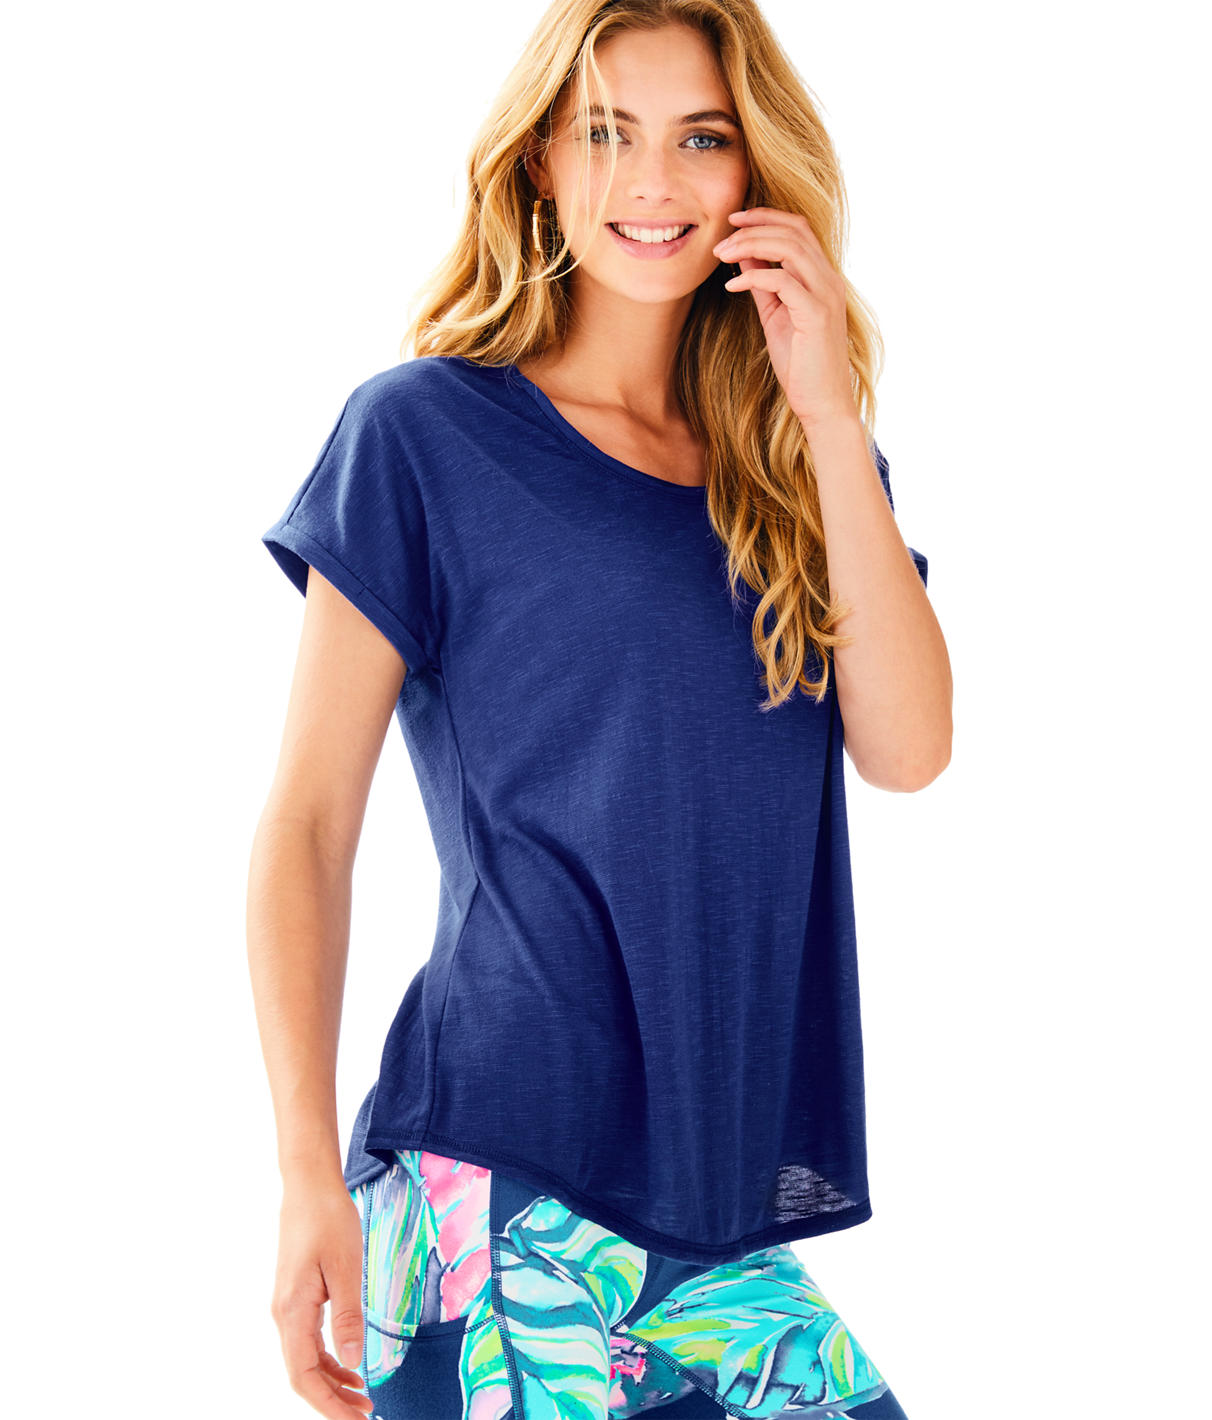 Lilly Pulitzer Luxletic Bryana Tee